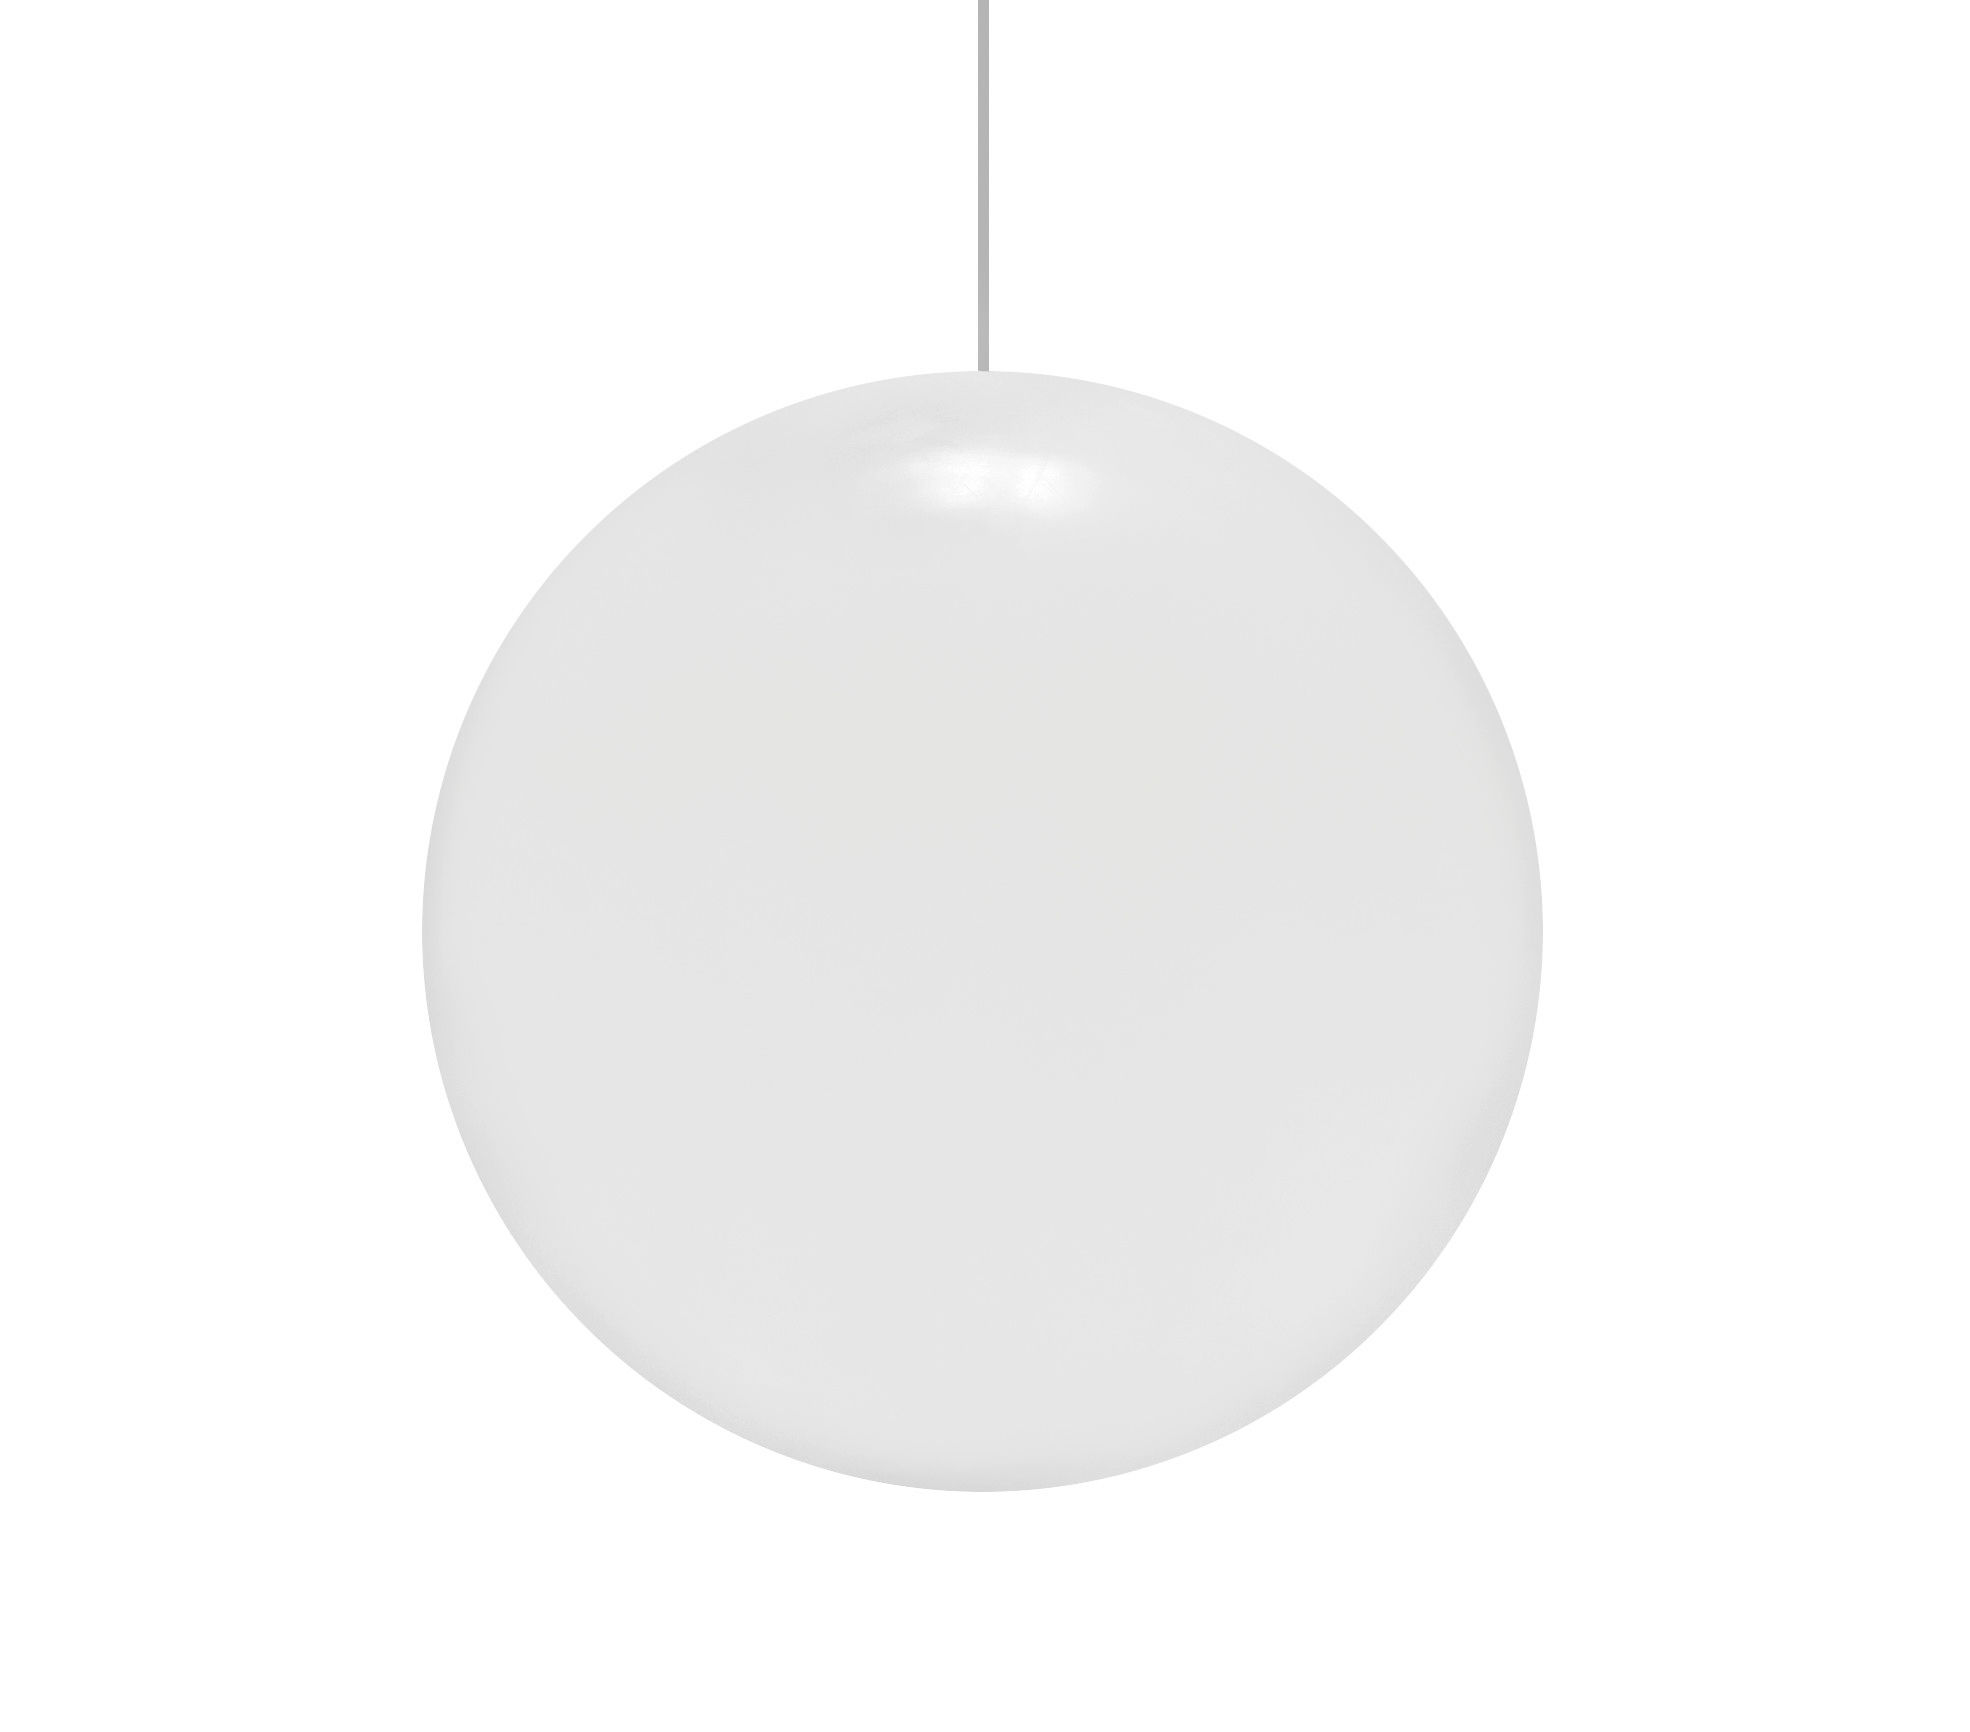 Lighting - Pendant Lighting - Globo Pendant by Slide - White - Ø 30 cm - Polythene